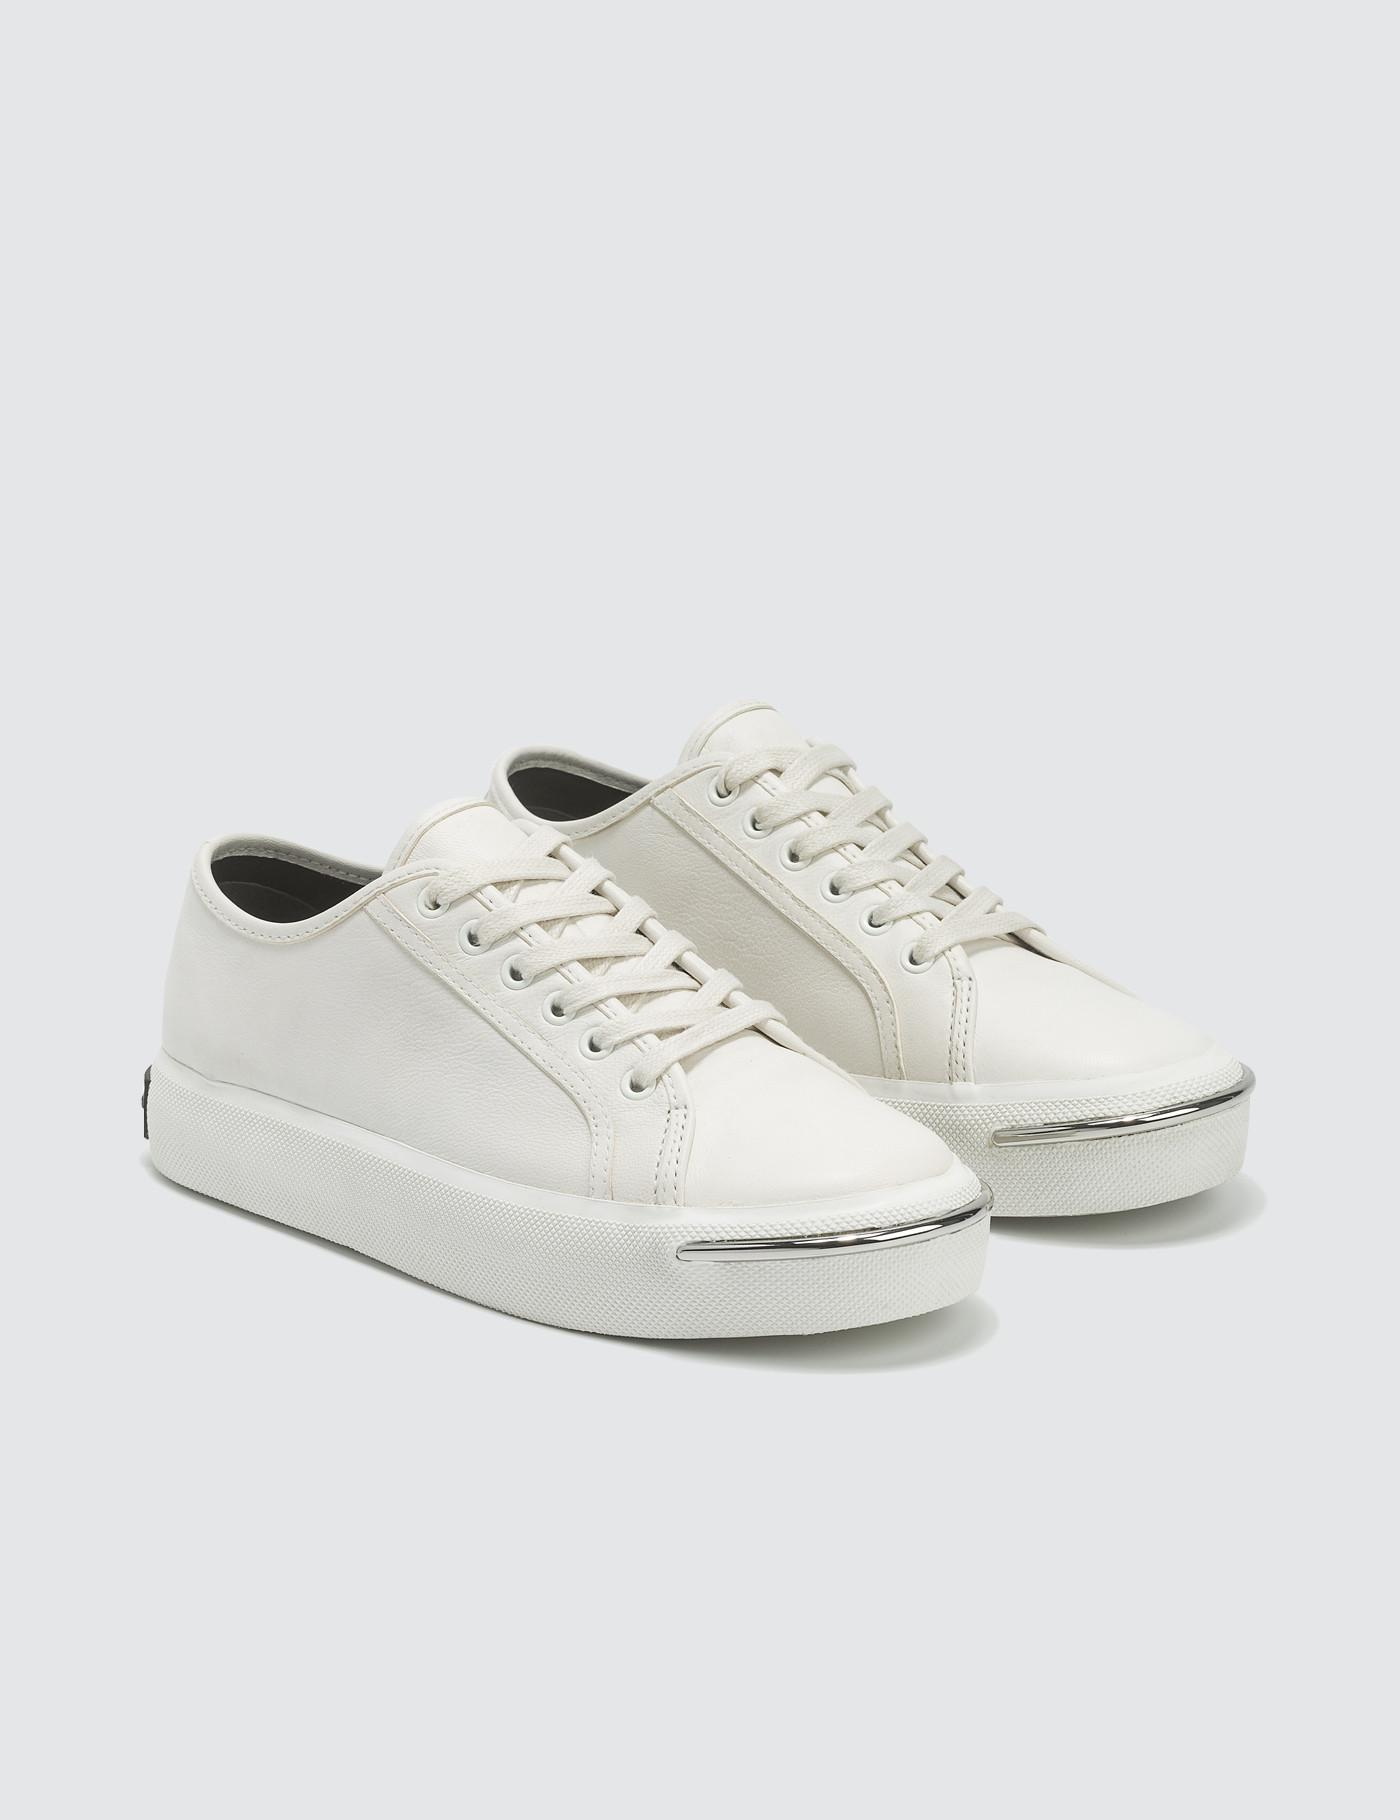 3c983d0f56af Alexander Wang - Pia Low White Leather Sneakers - Lyst. View fullscreen